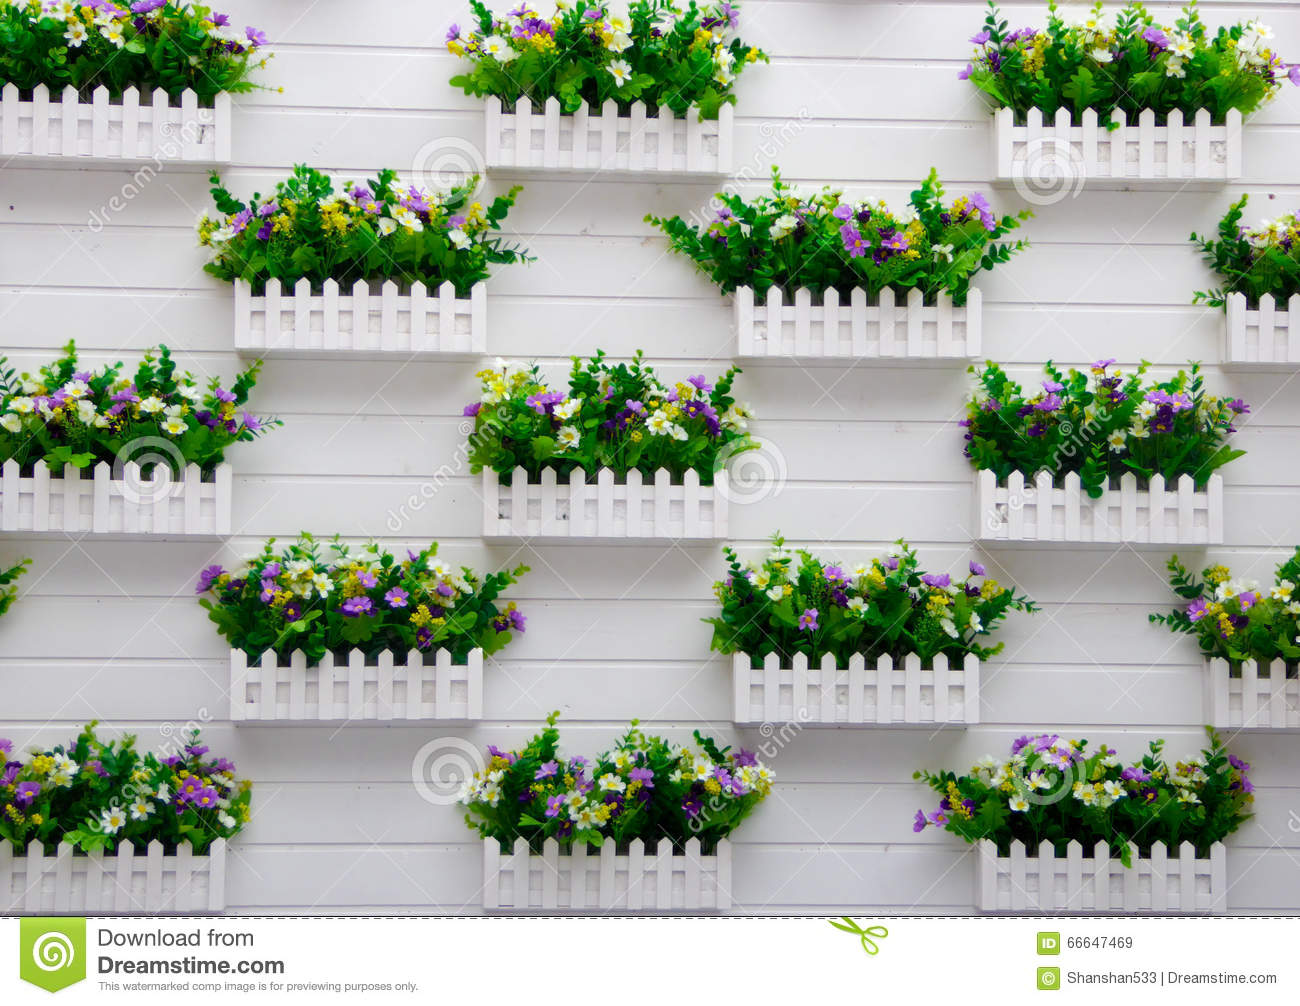 Potted Plants Hanging On The Wall Stock Image Image Of